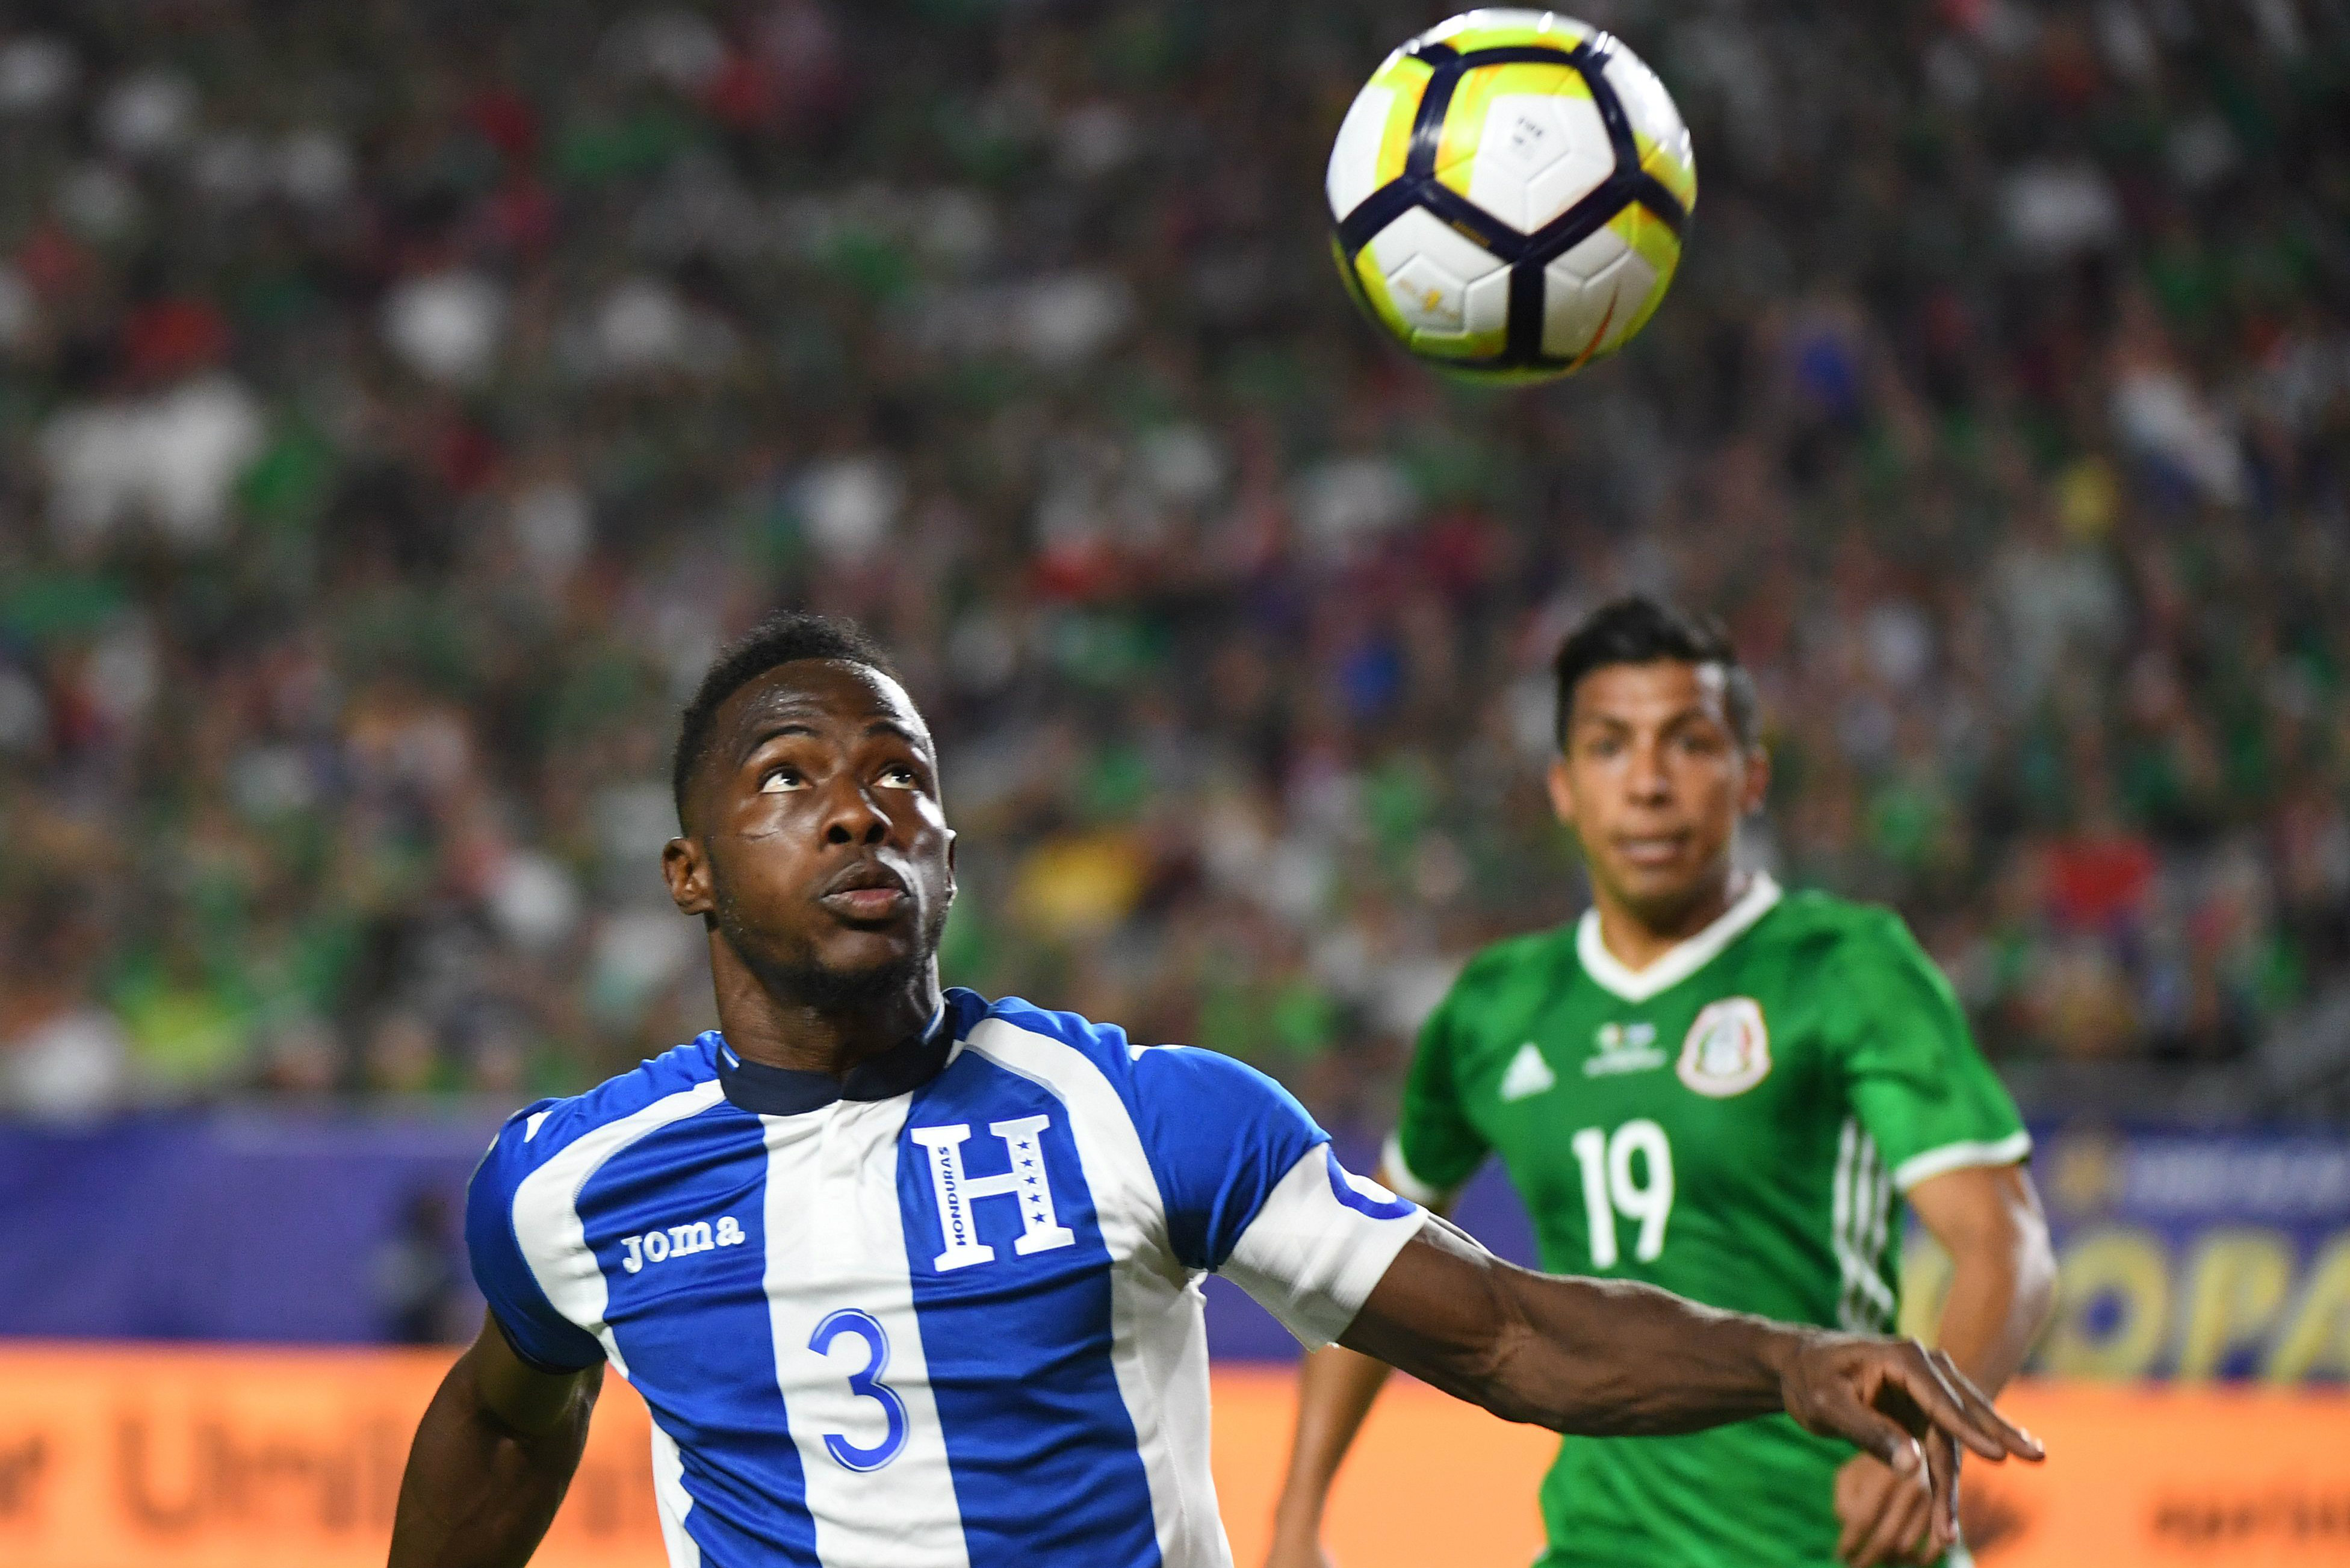 Maynor Figueroa brings big-game experience to the Honduras side.